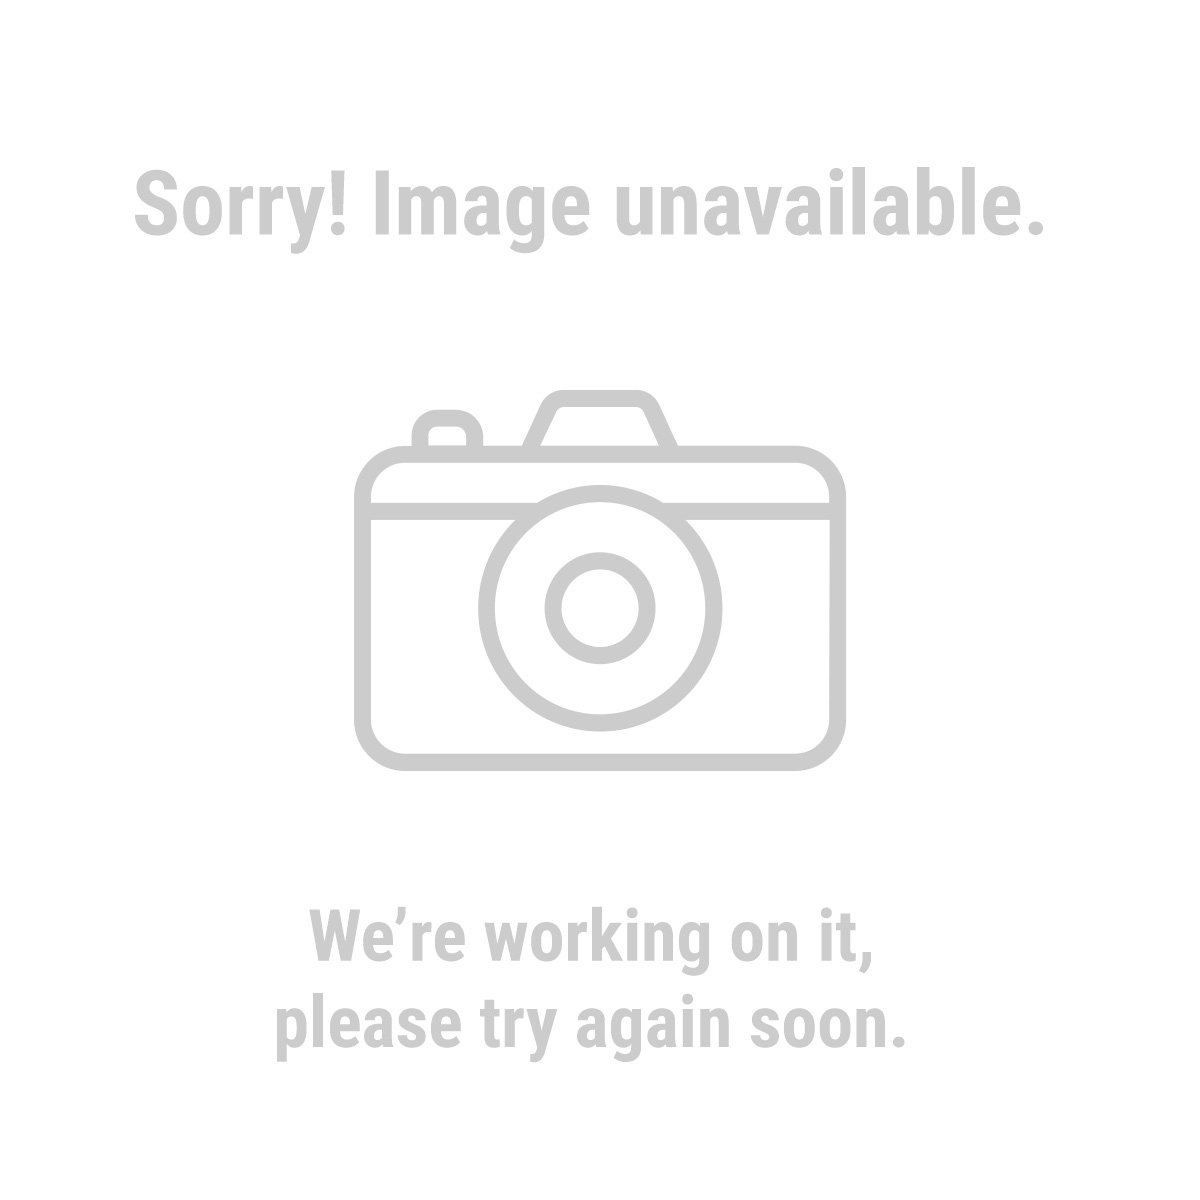 Windsor Design 61795 36 Piece Fluted Dowel Pins